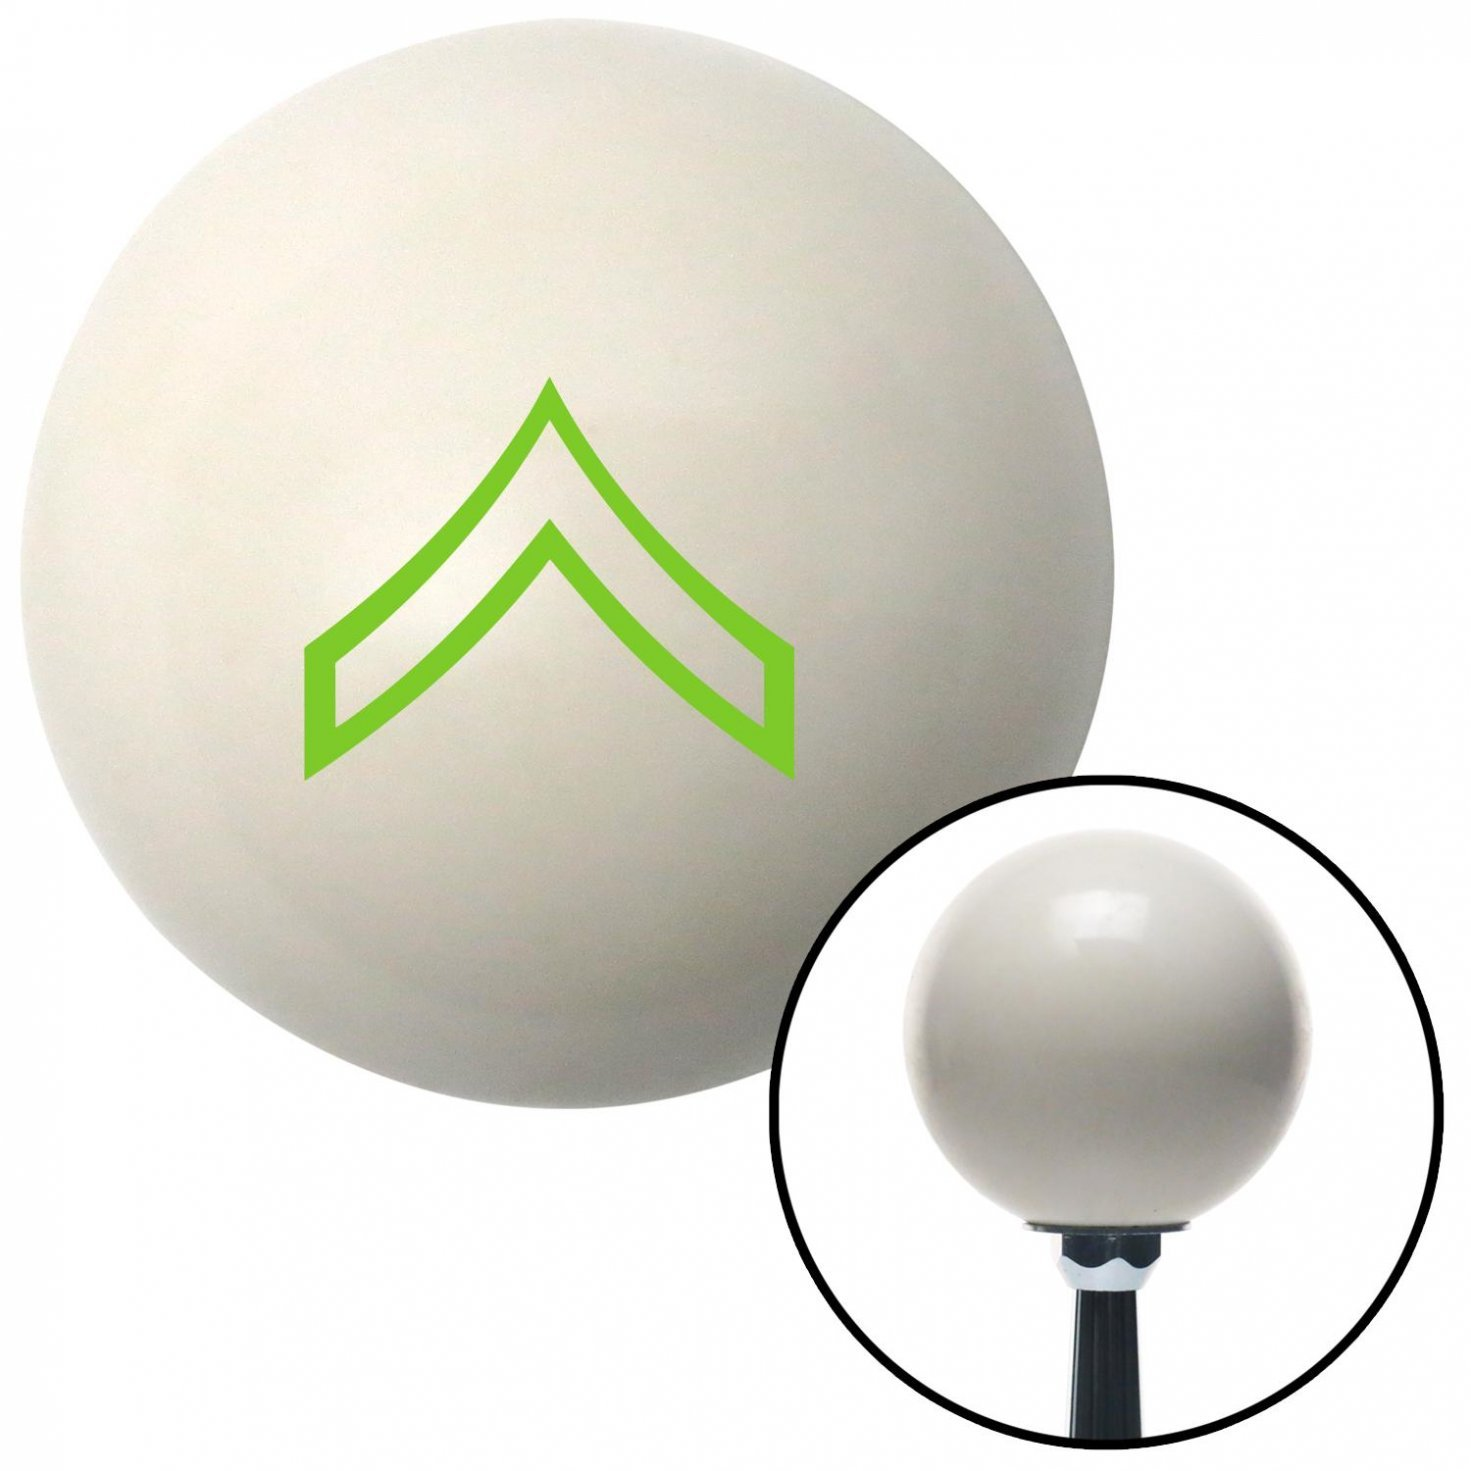 American Shifter 40684 Ivory Shift Knob with 16mm x 1.5 Insert Green 01 Private First Class